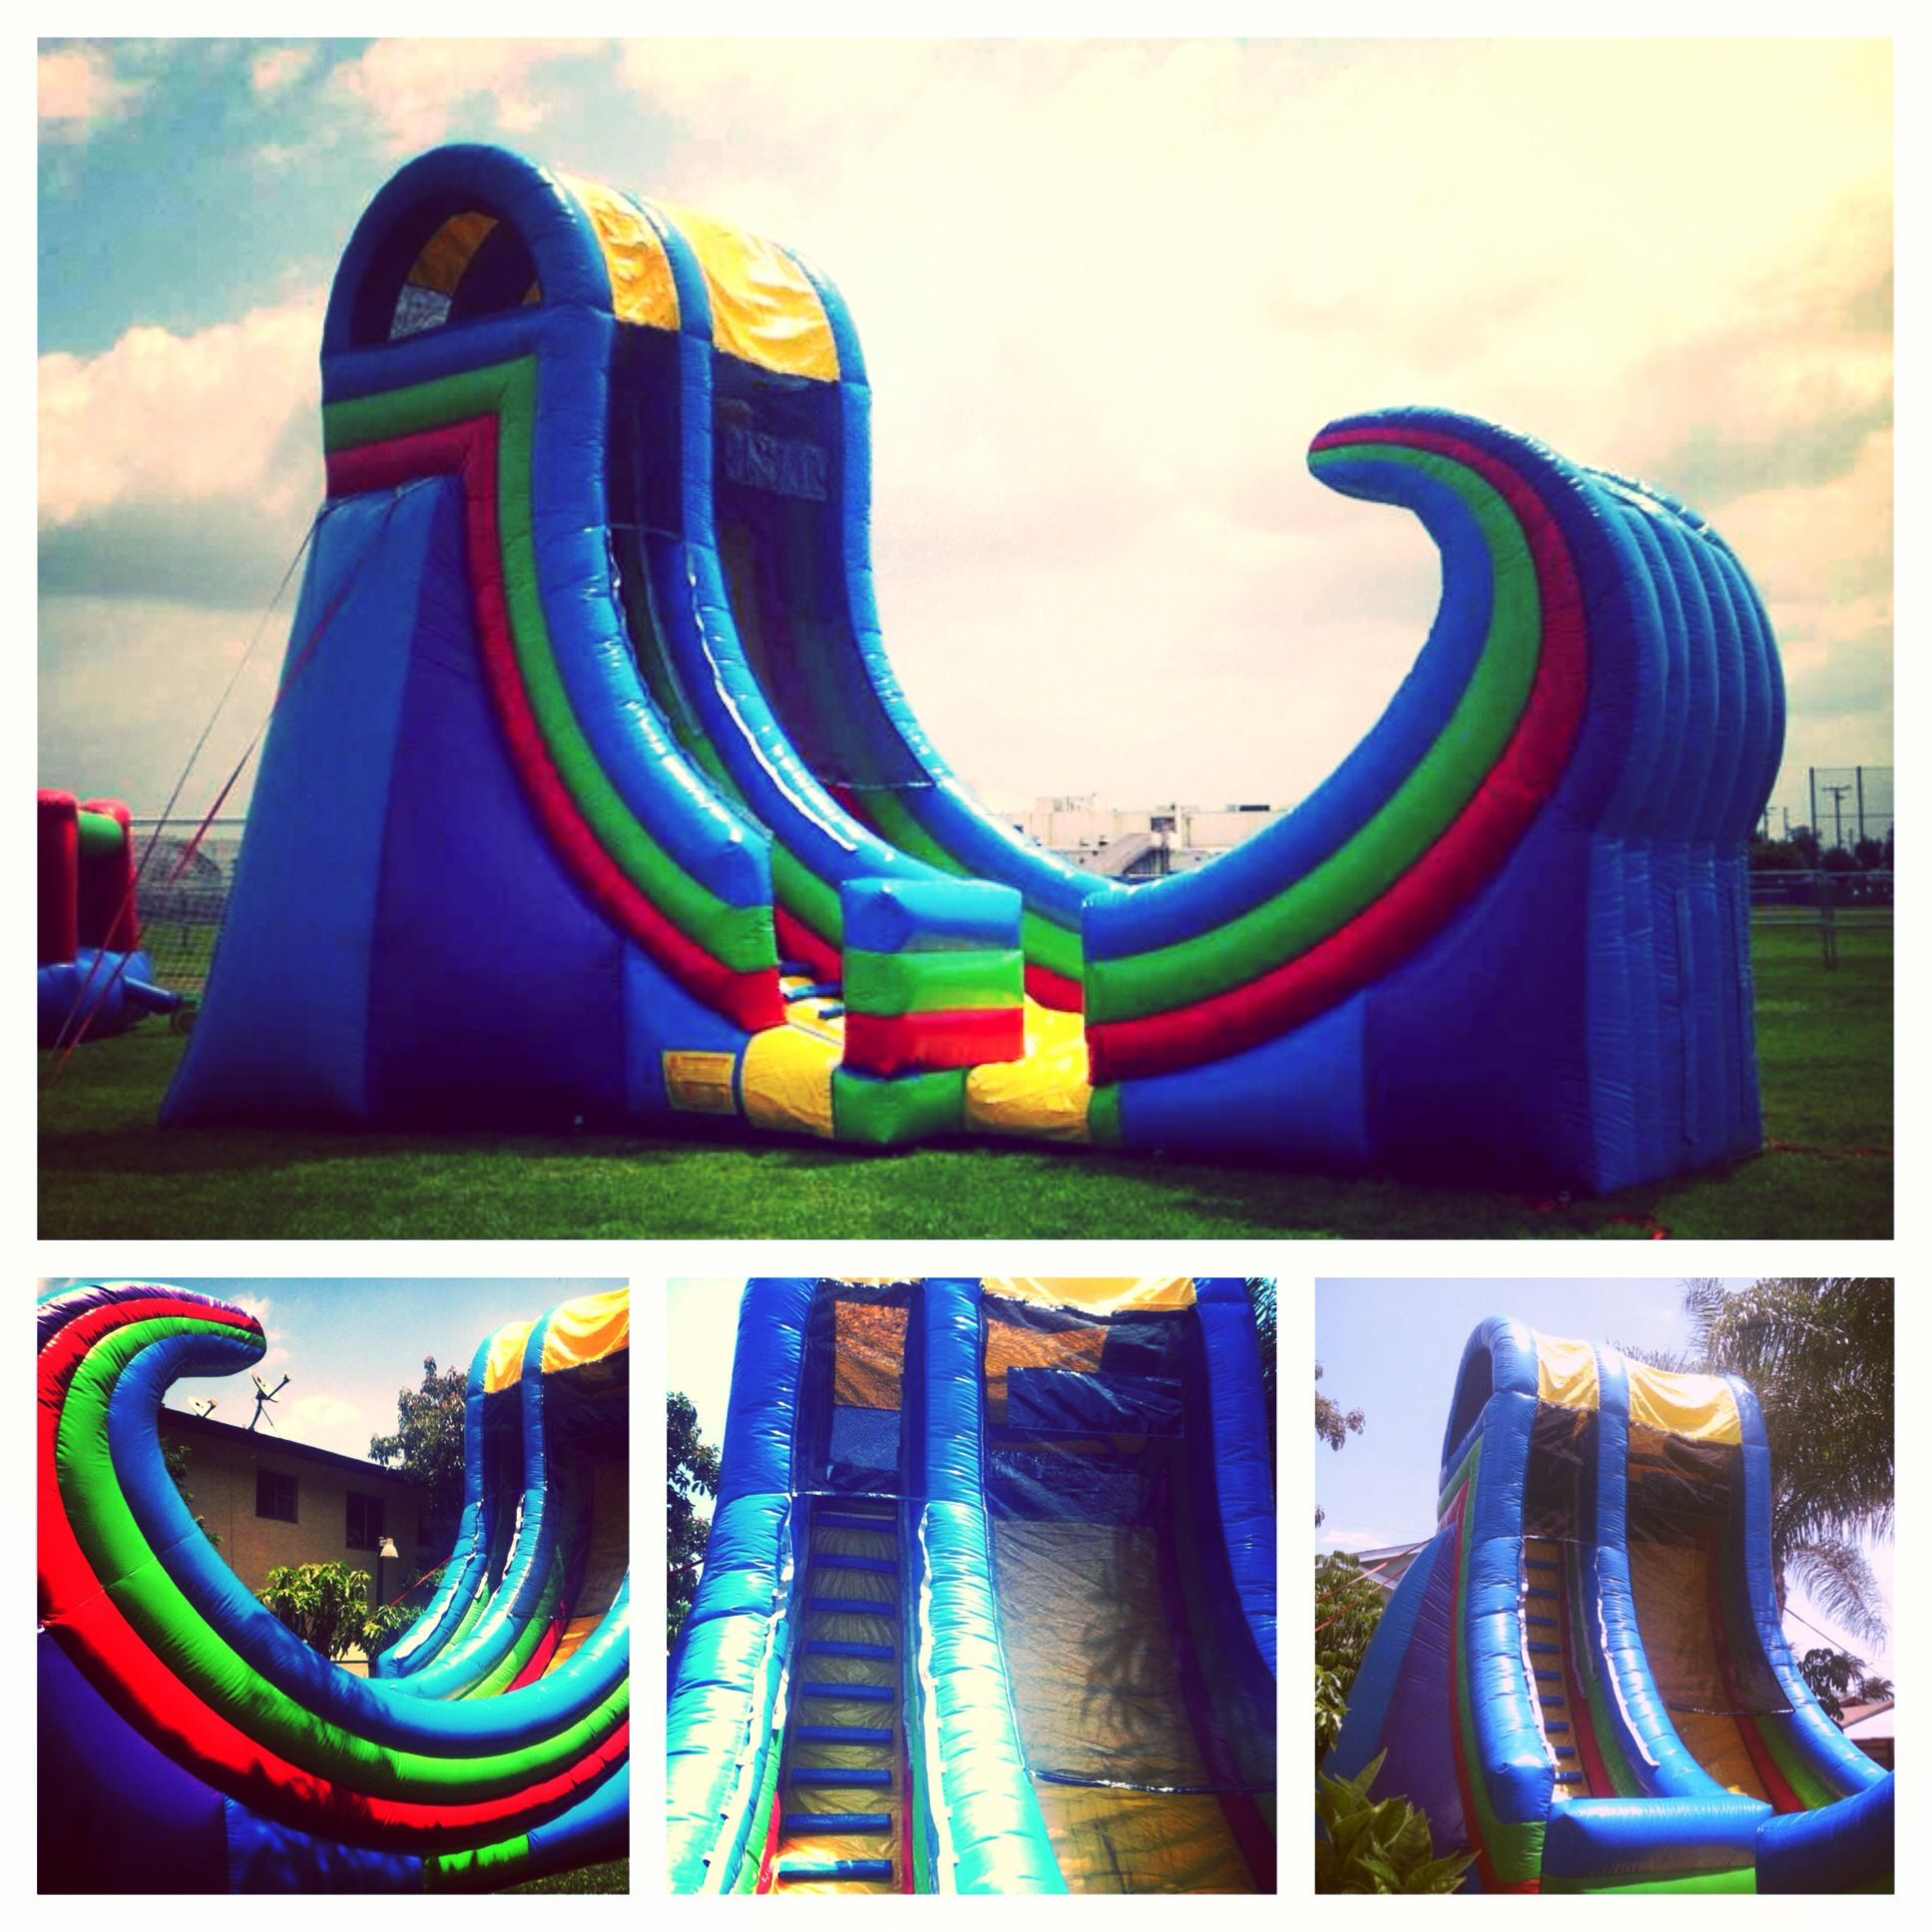 22ft Blue Lagoon Inflatable Waterslide Rentals From Astro Jump Of Atlanta Www Astrojump Com Water Slides Inflatable Water Slide Water Slide Rentals